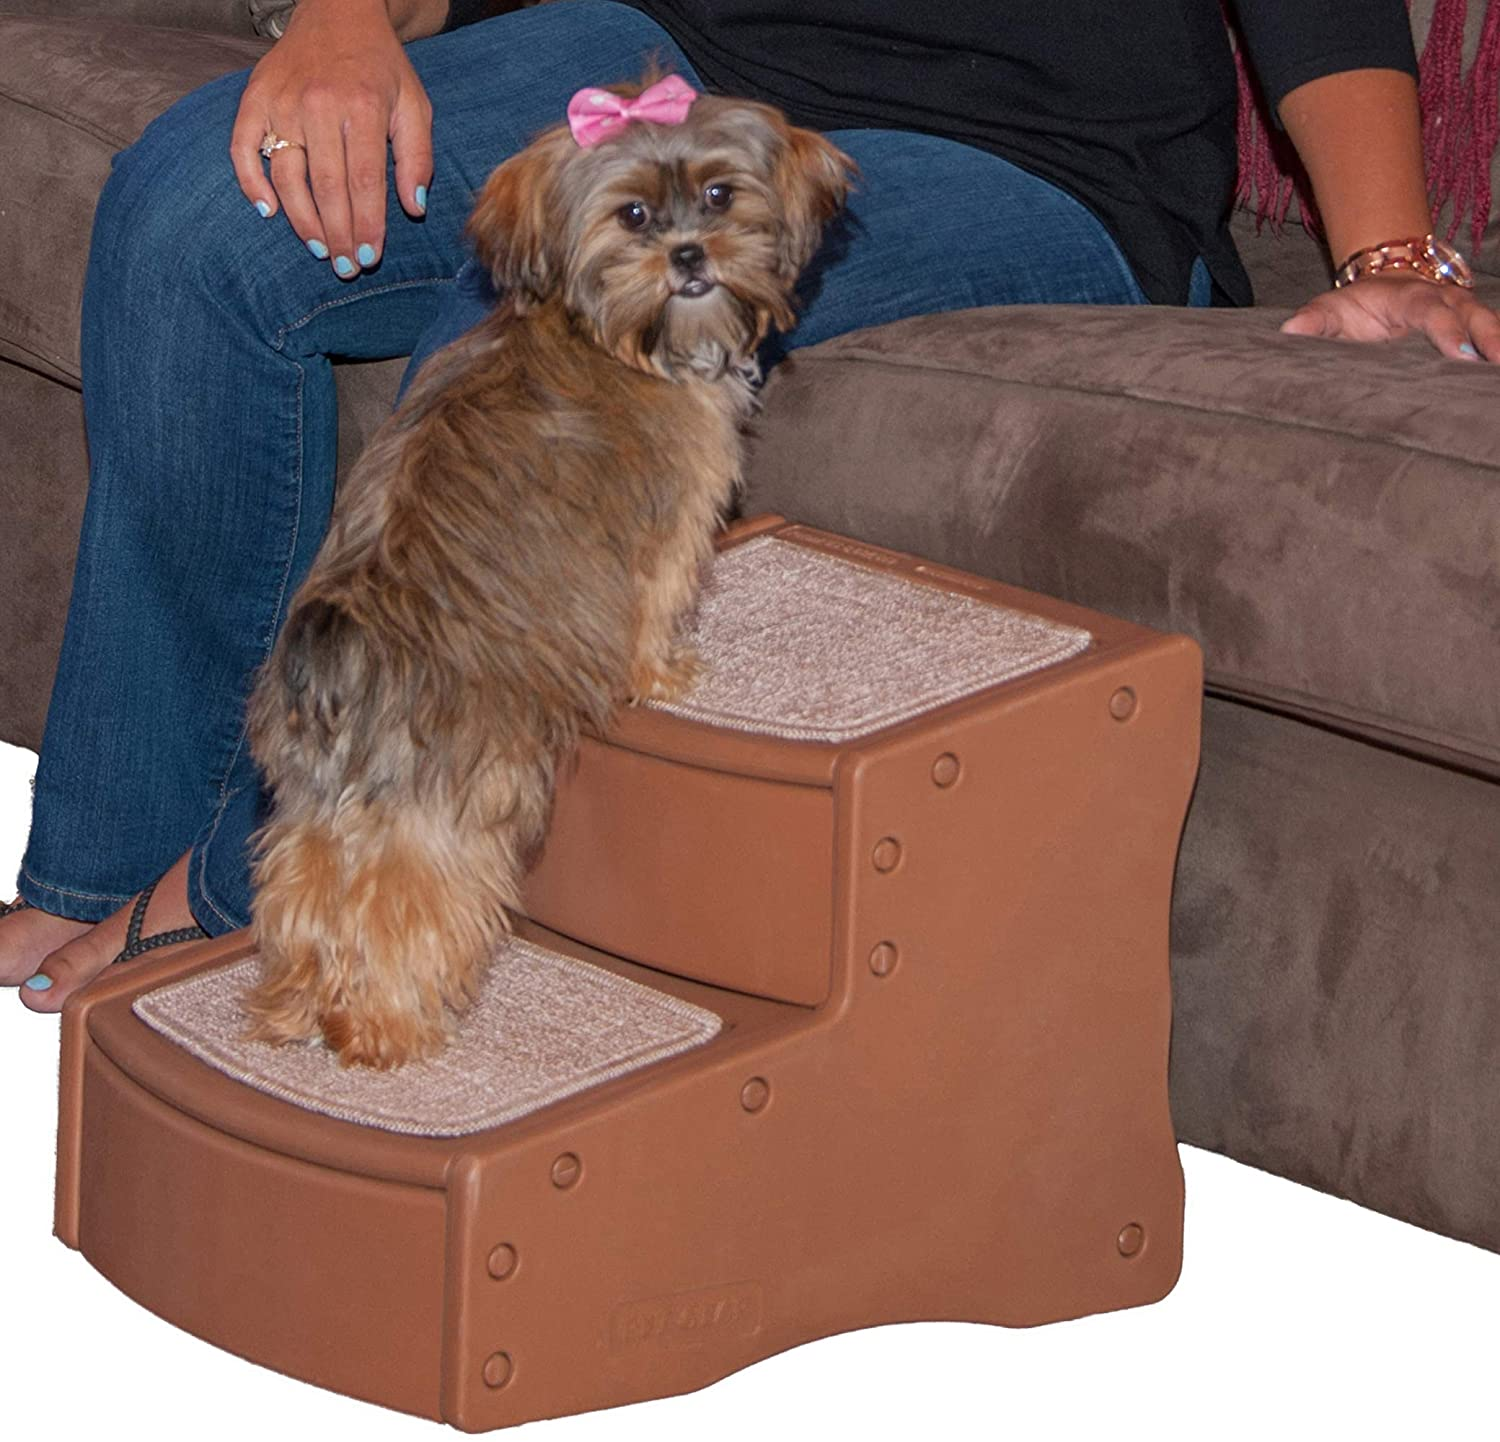 Pet Gear Easy Step II Pet Stairs, 2 Step for Cats/Dogs up to 75-pounds, Portable, Removable Washable Carpet Tread